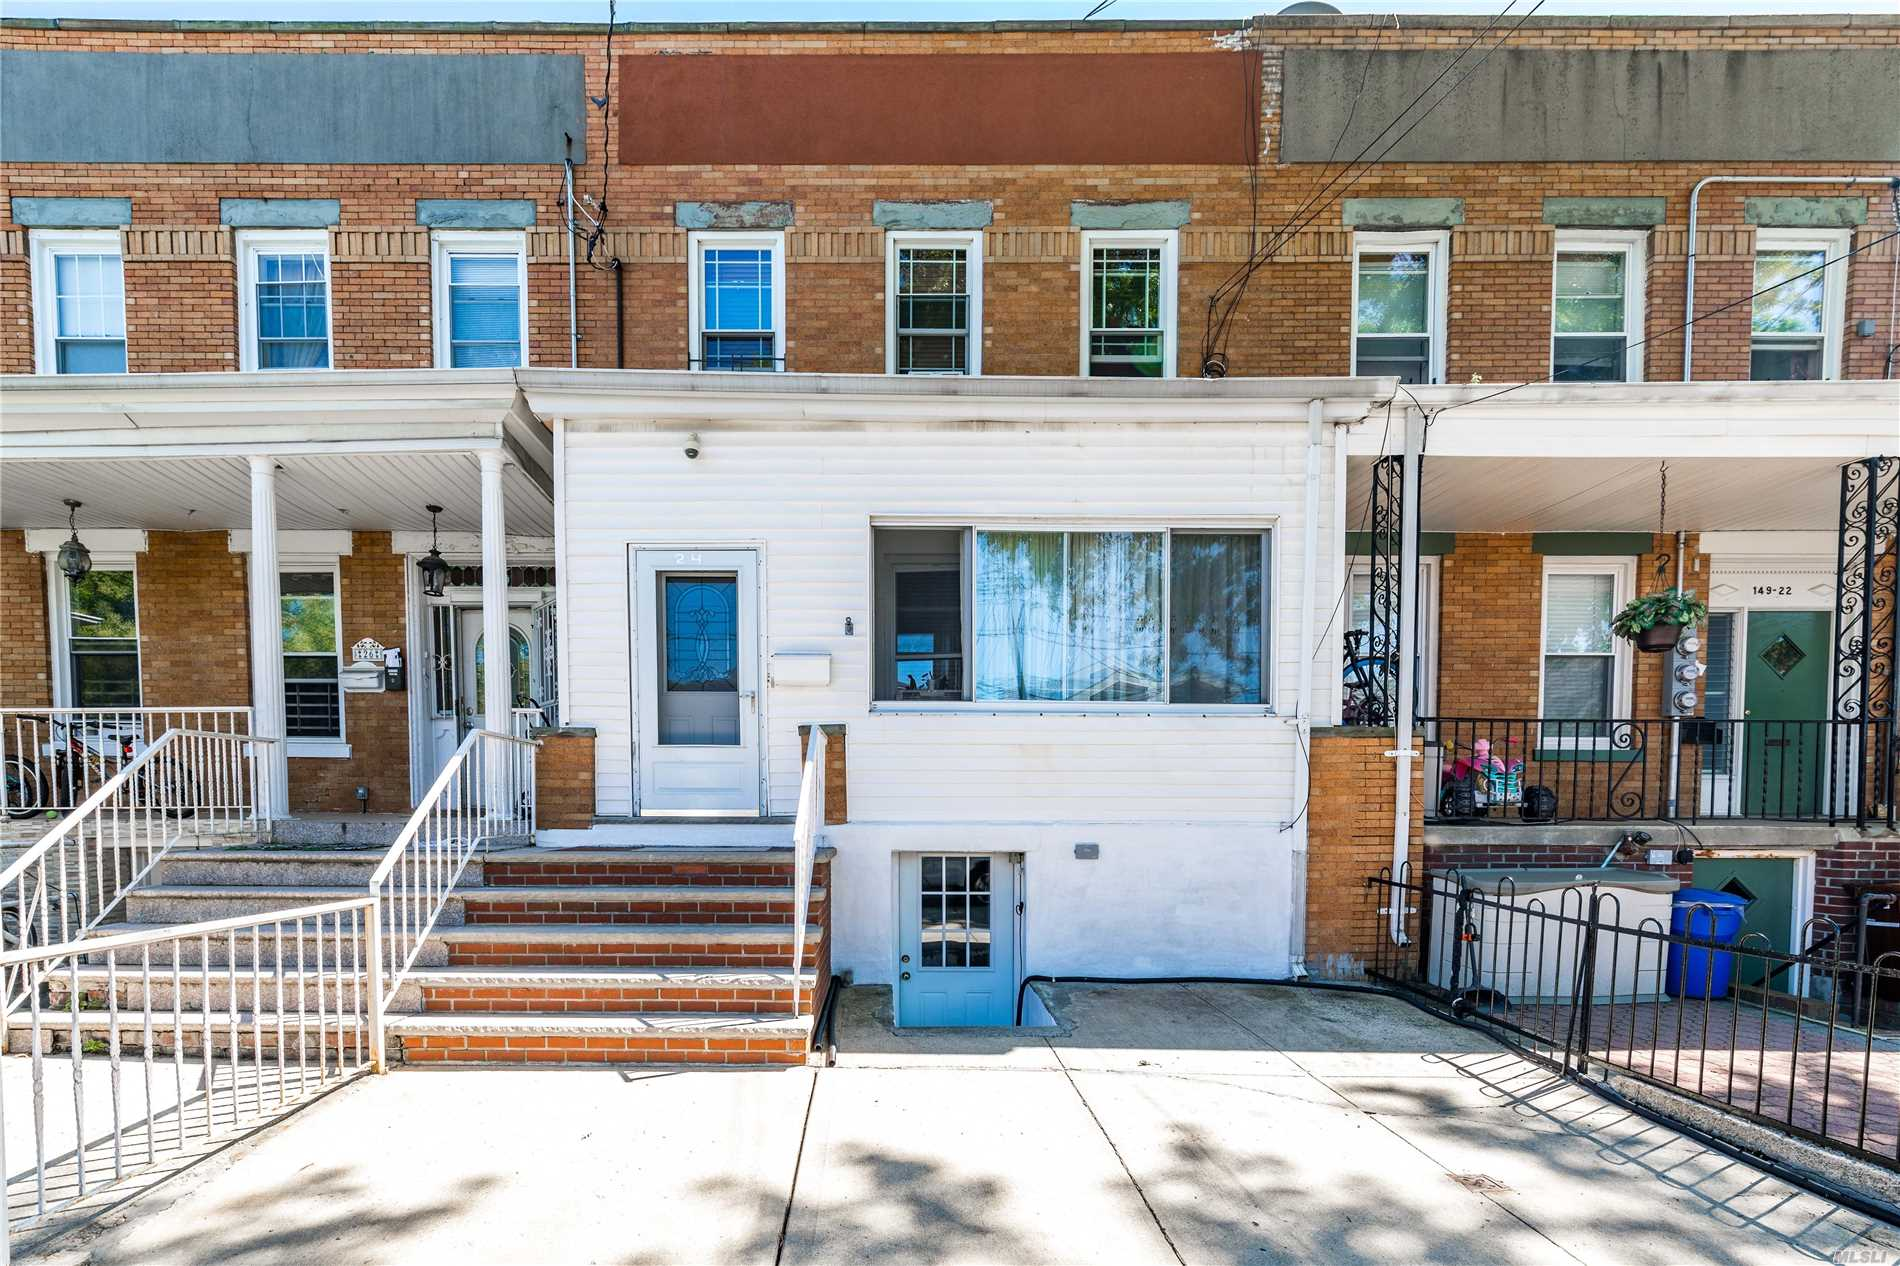 Well Maintained Legal 2 Family In The Heart Of Whitestone. Very Conveniently Located Near Buses, Cross Island Expressway, Whitestone Bridge. This Lovely Gas Heated Home Features: Gleaming Hardwood Floors, Updated Kit And Baths. 9 Foot High Ceilings, Full Finished Basement With Separate Entrance And 3 Big Rooms.